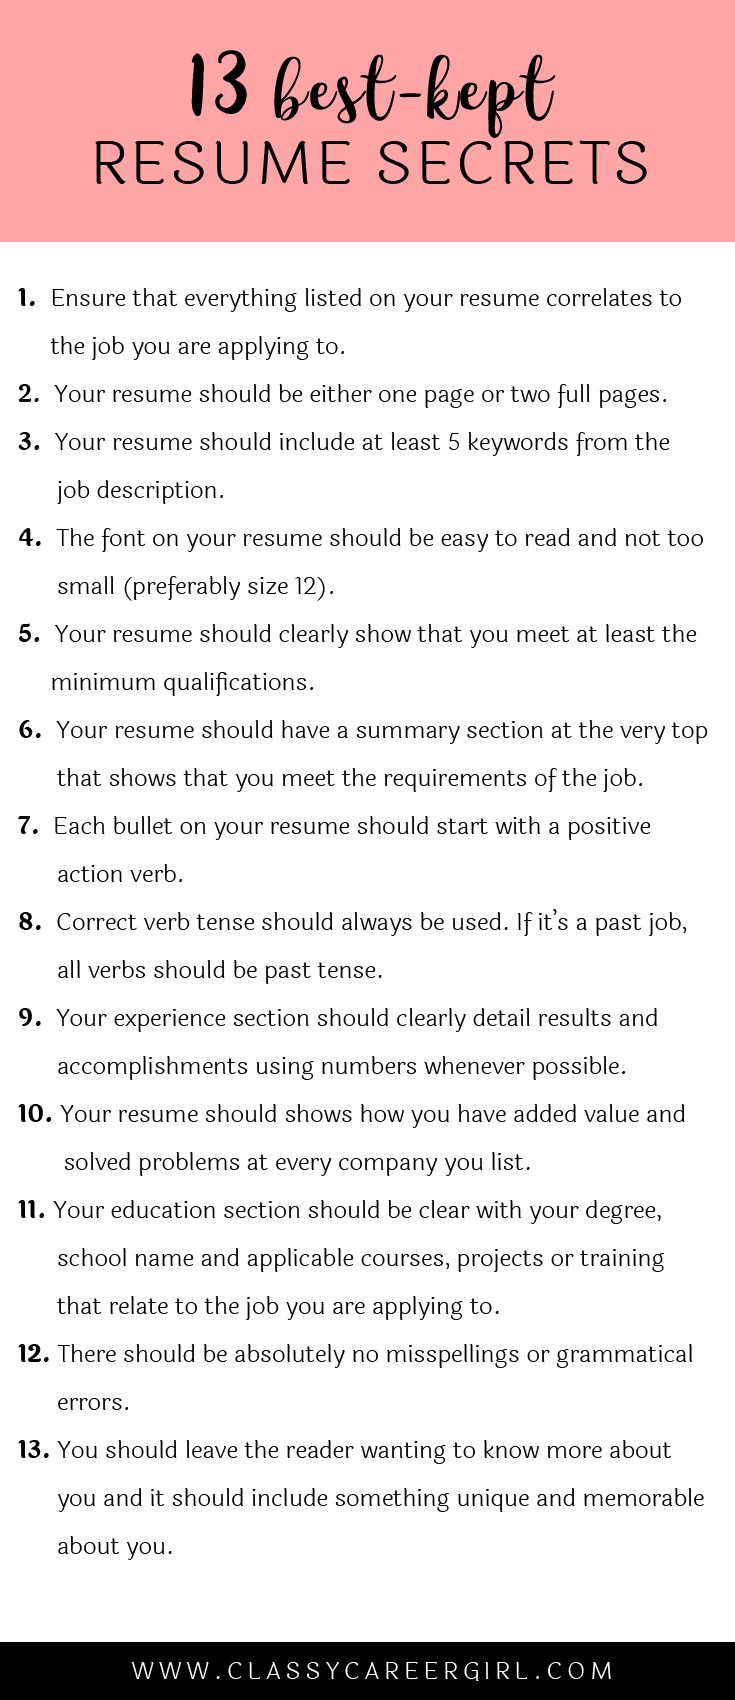 Opposenewapstandardsus  Winsome  Ideas About Resume On Pinterest  Cv Format Resume  With Fetching Some Hiring Managers Will Toss Your Resume Out If You Dont Know These  With Alluring Sample Resume For Business Analyst Also Self Motivated Resume In Addition Summary On Resume Examples And Free Resume Templates In Word As Well As College Resume Template Word Additionally Professional Resume Template Download From Pinterestcom With Opposenewapstandardsus  Fetching  Ideas About Resume On Pinterest  Cv Format Resume  With Alluring Some Hiring Managers Will Toss Your Resume Out If You Dont Know These  And Winsome Sample Resume For Business Analyst Also Self Motivated Resume In Addition Summary On Resume Examples From Pinterestcom